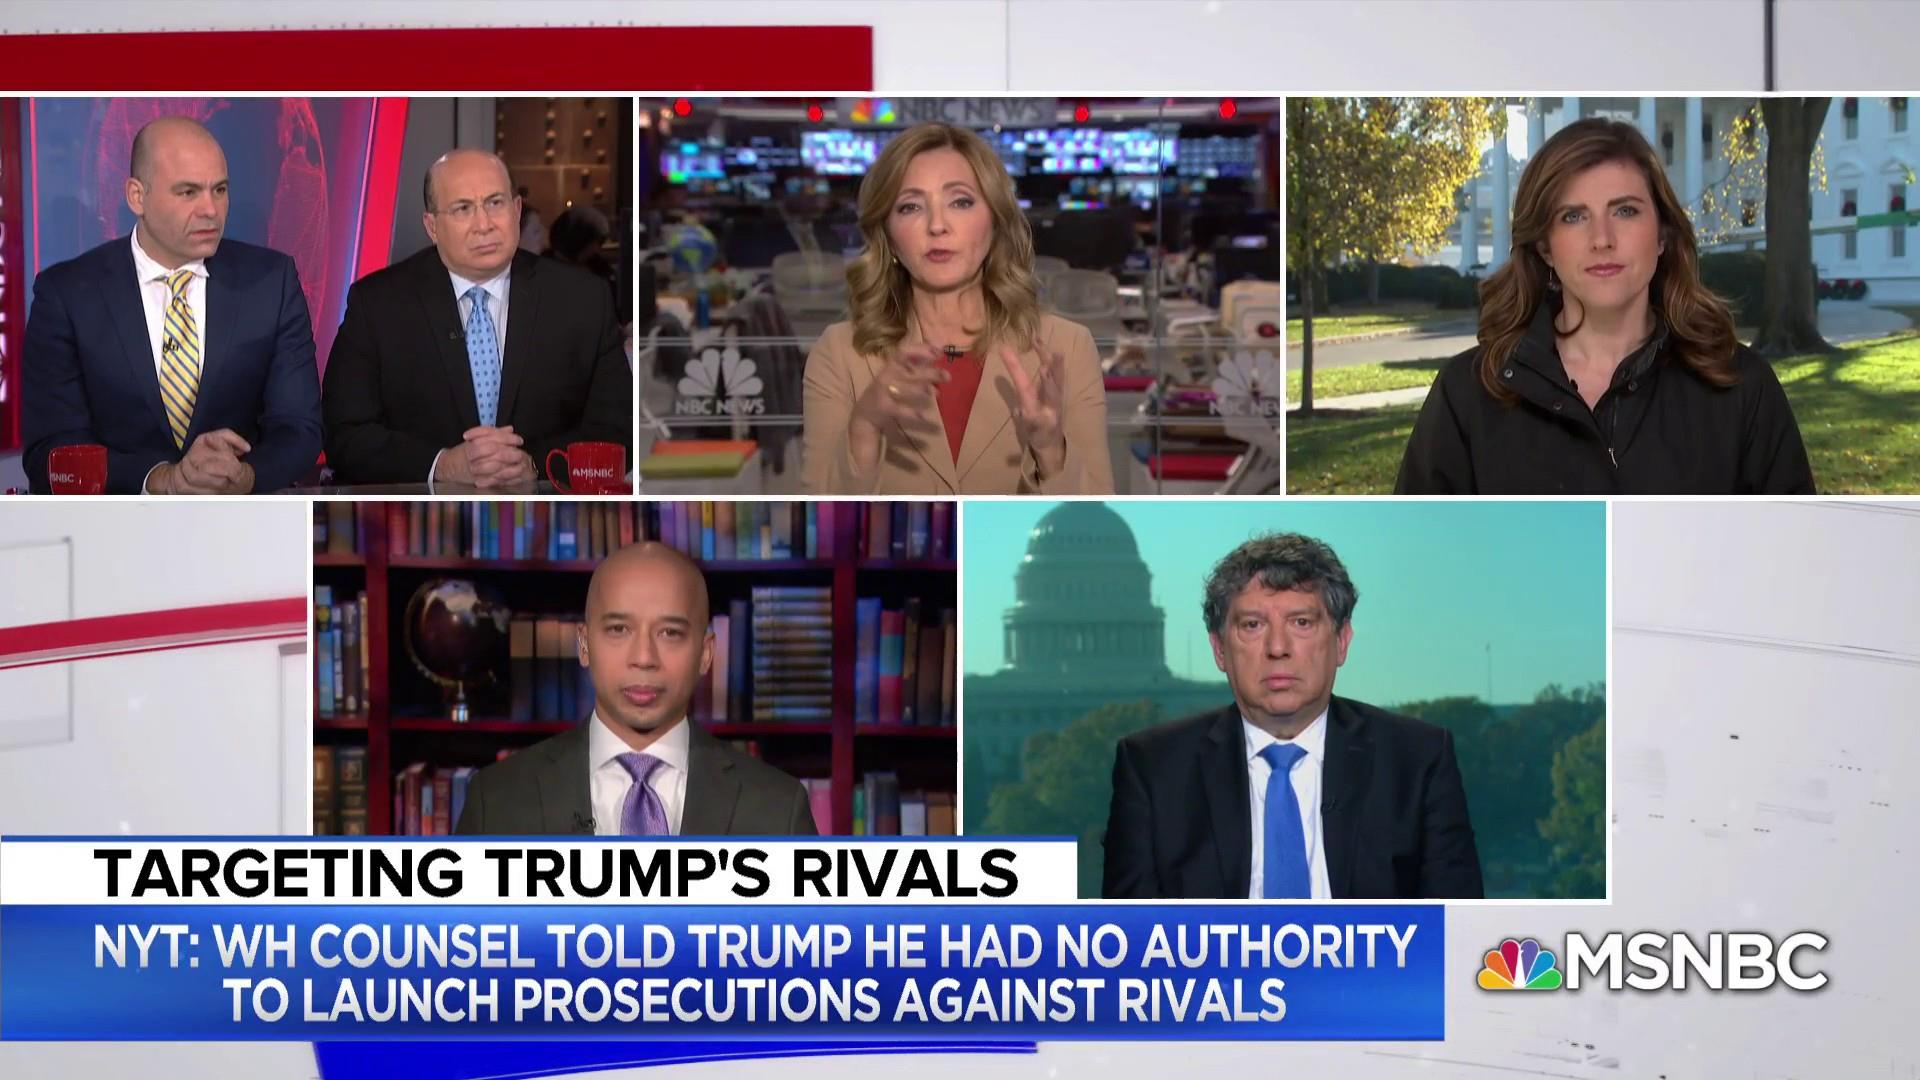 Don McGahn reportedly stopped Trump from prosecuting Clinton and Comey